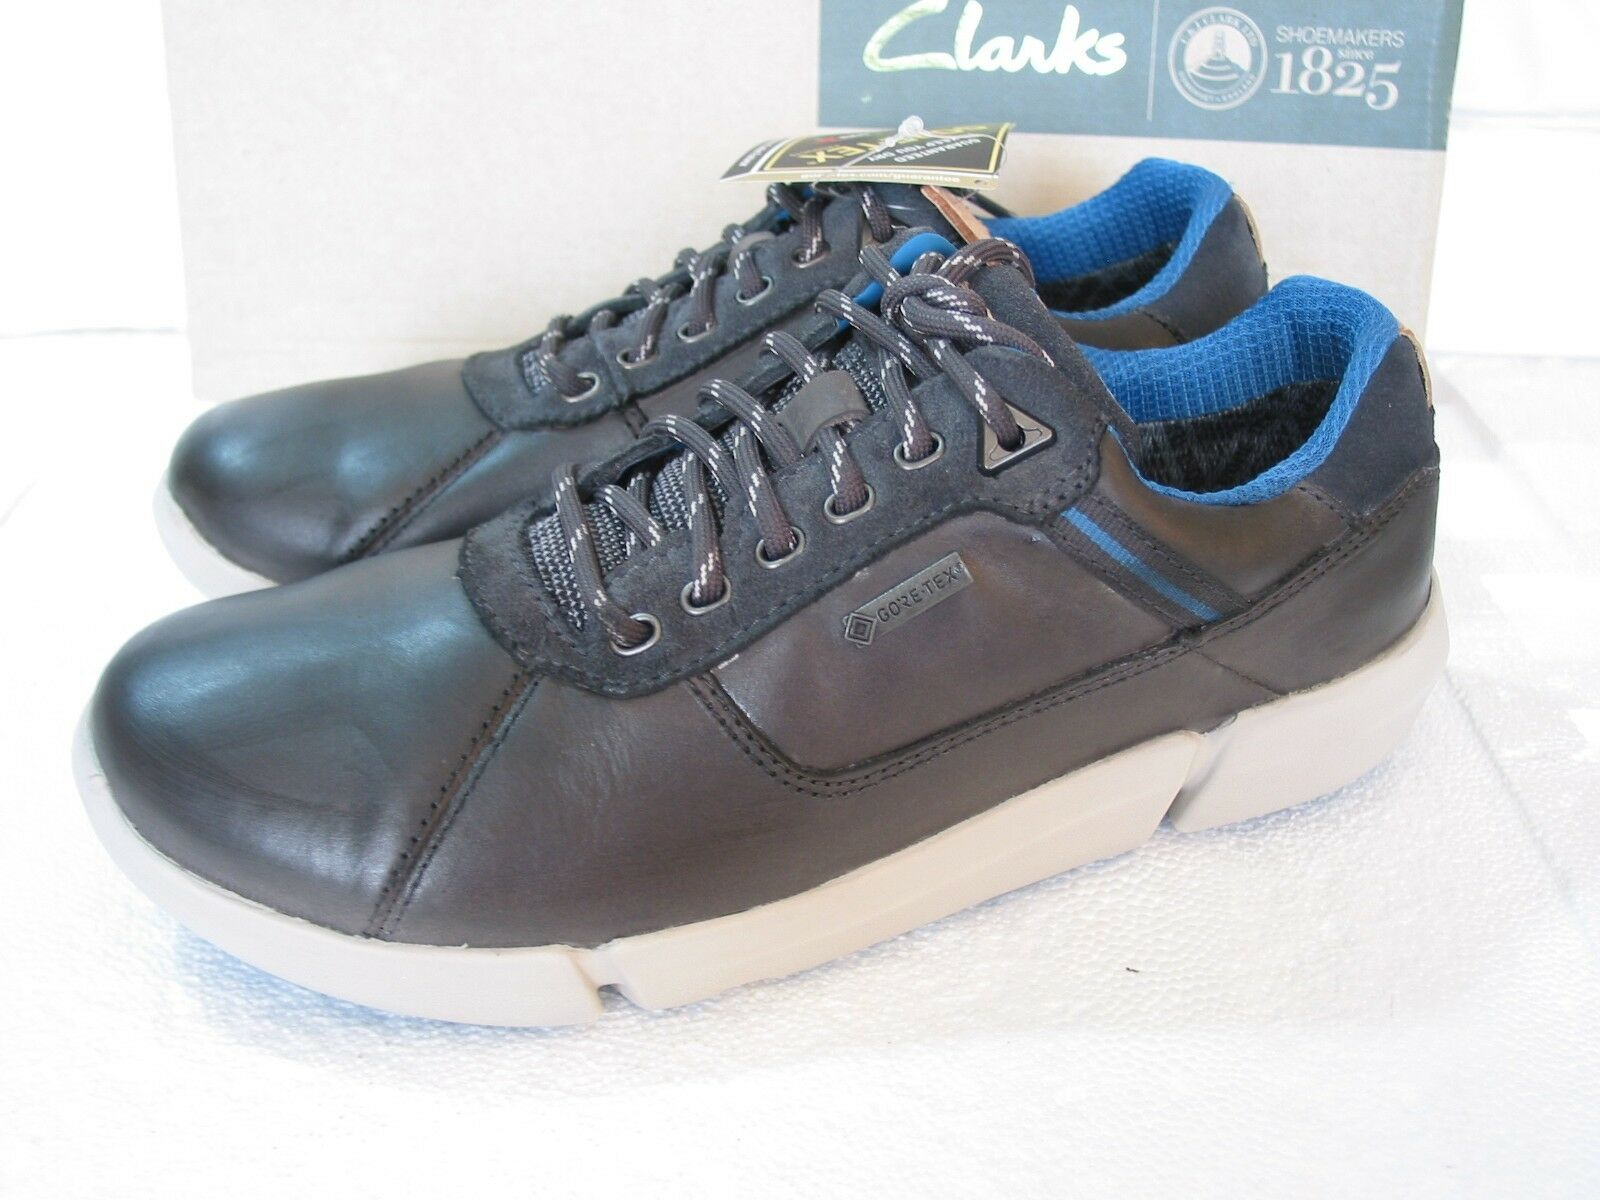 NEW CLARKS TRIGENIC TRIMAN LO GORETEX GREY LEATHER TRAINERS SHOES SIZE 7 G FIT